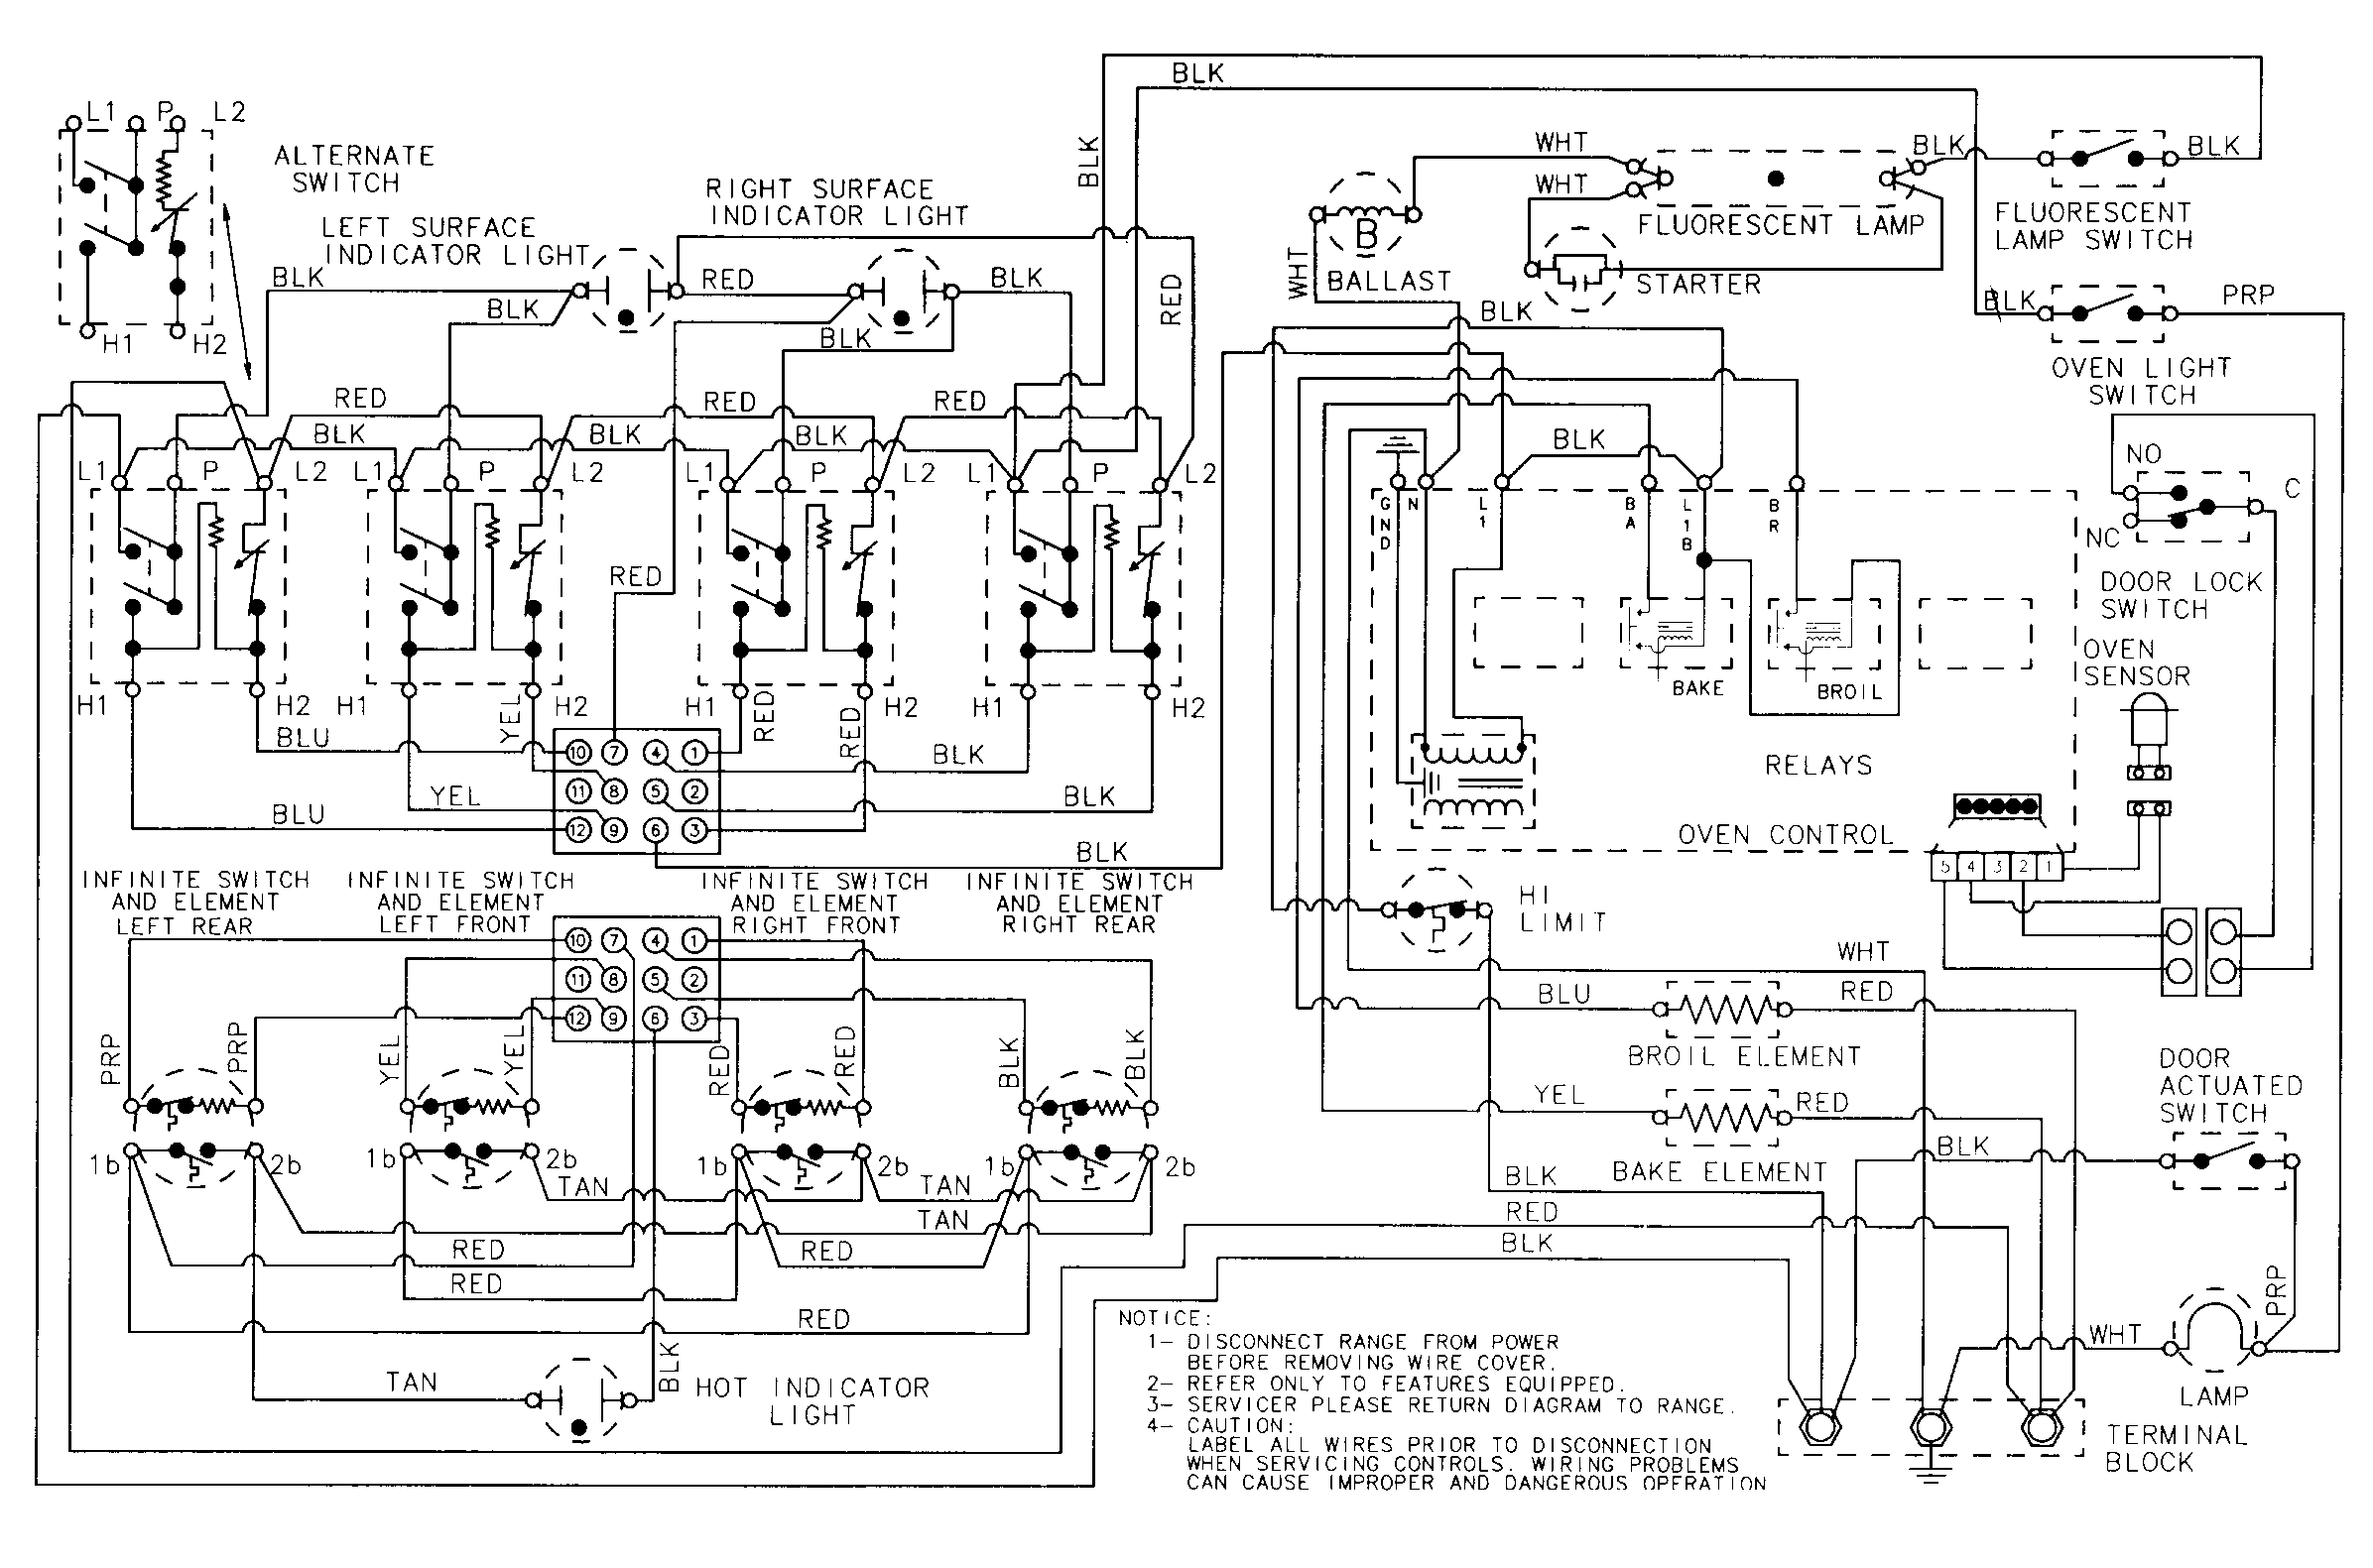 Whirlpool Gas Dryer Wiring Diagram Collection Sample Furnace Download Cre9600 Range Information Parts 13 J